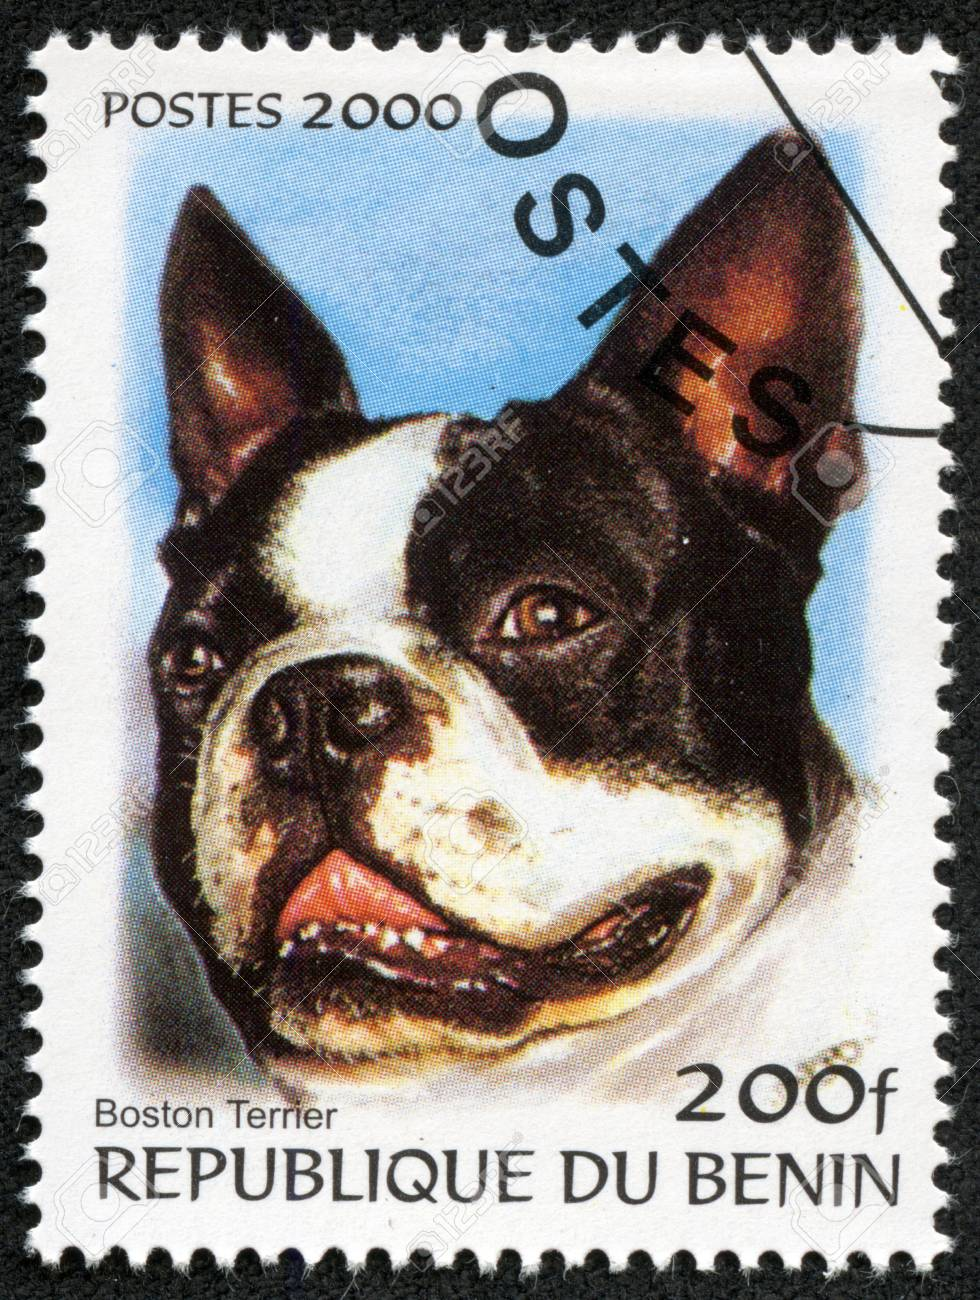 BENIN - CIRCA 2000  A stamp printed in BENIN,shows a dog, circa 2000 Stock Photo - 17261709